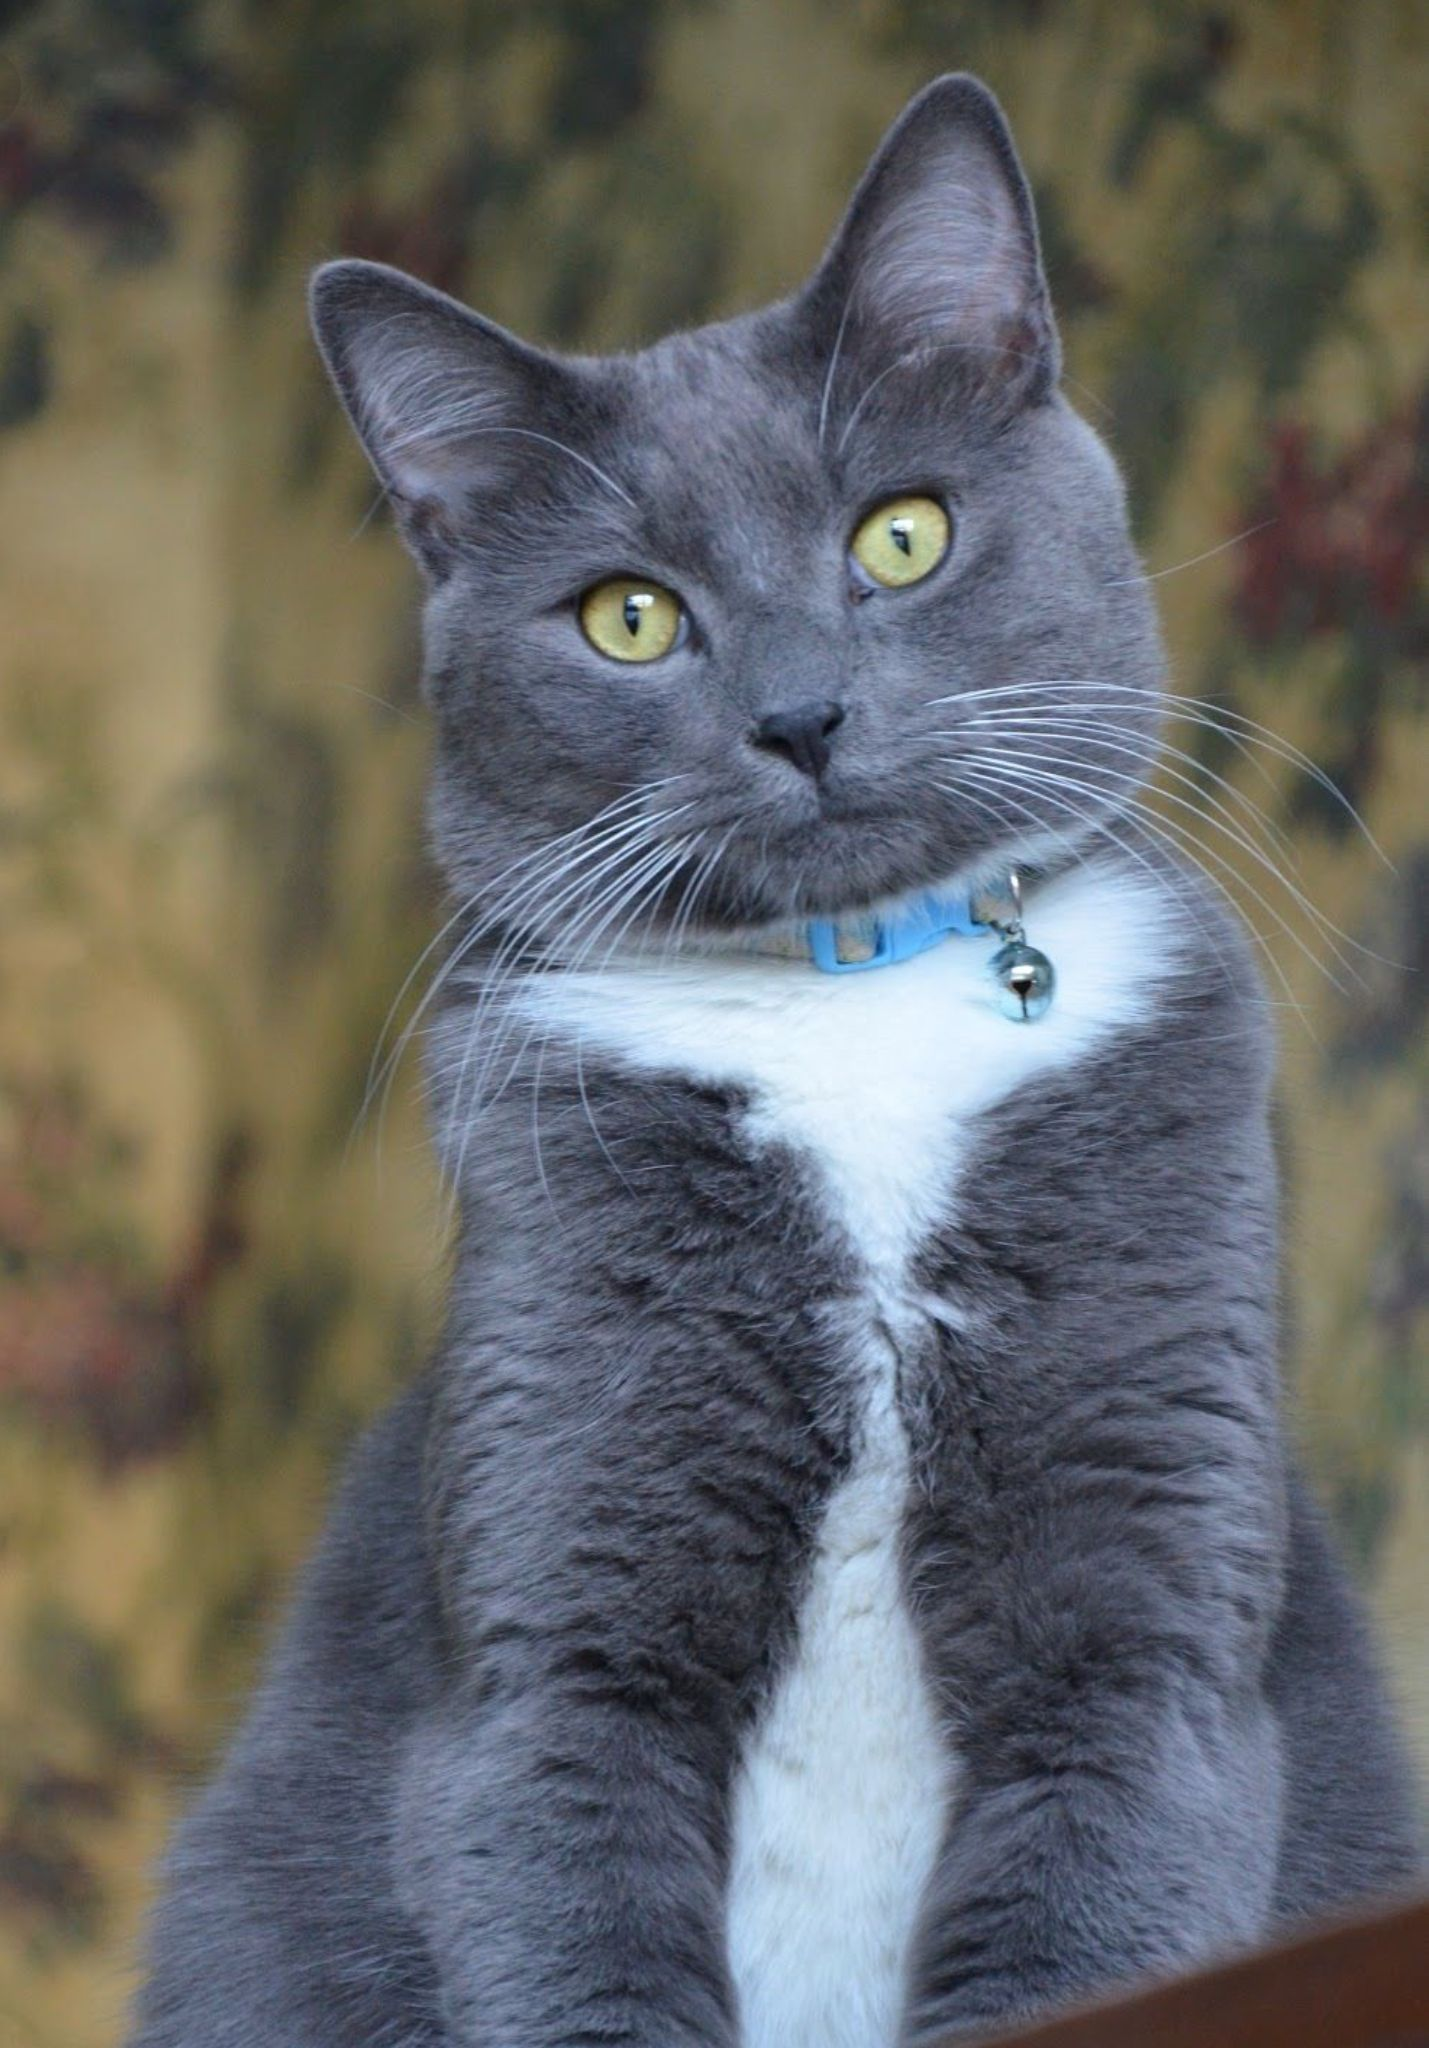 Pin By Elisabeth La Pez Ruiz On Livre Cats And Kittens Grey Cats Cool Cats